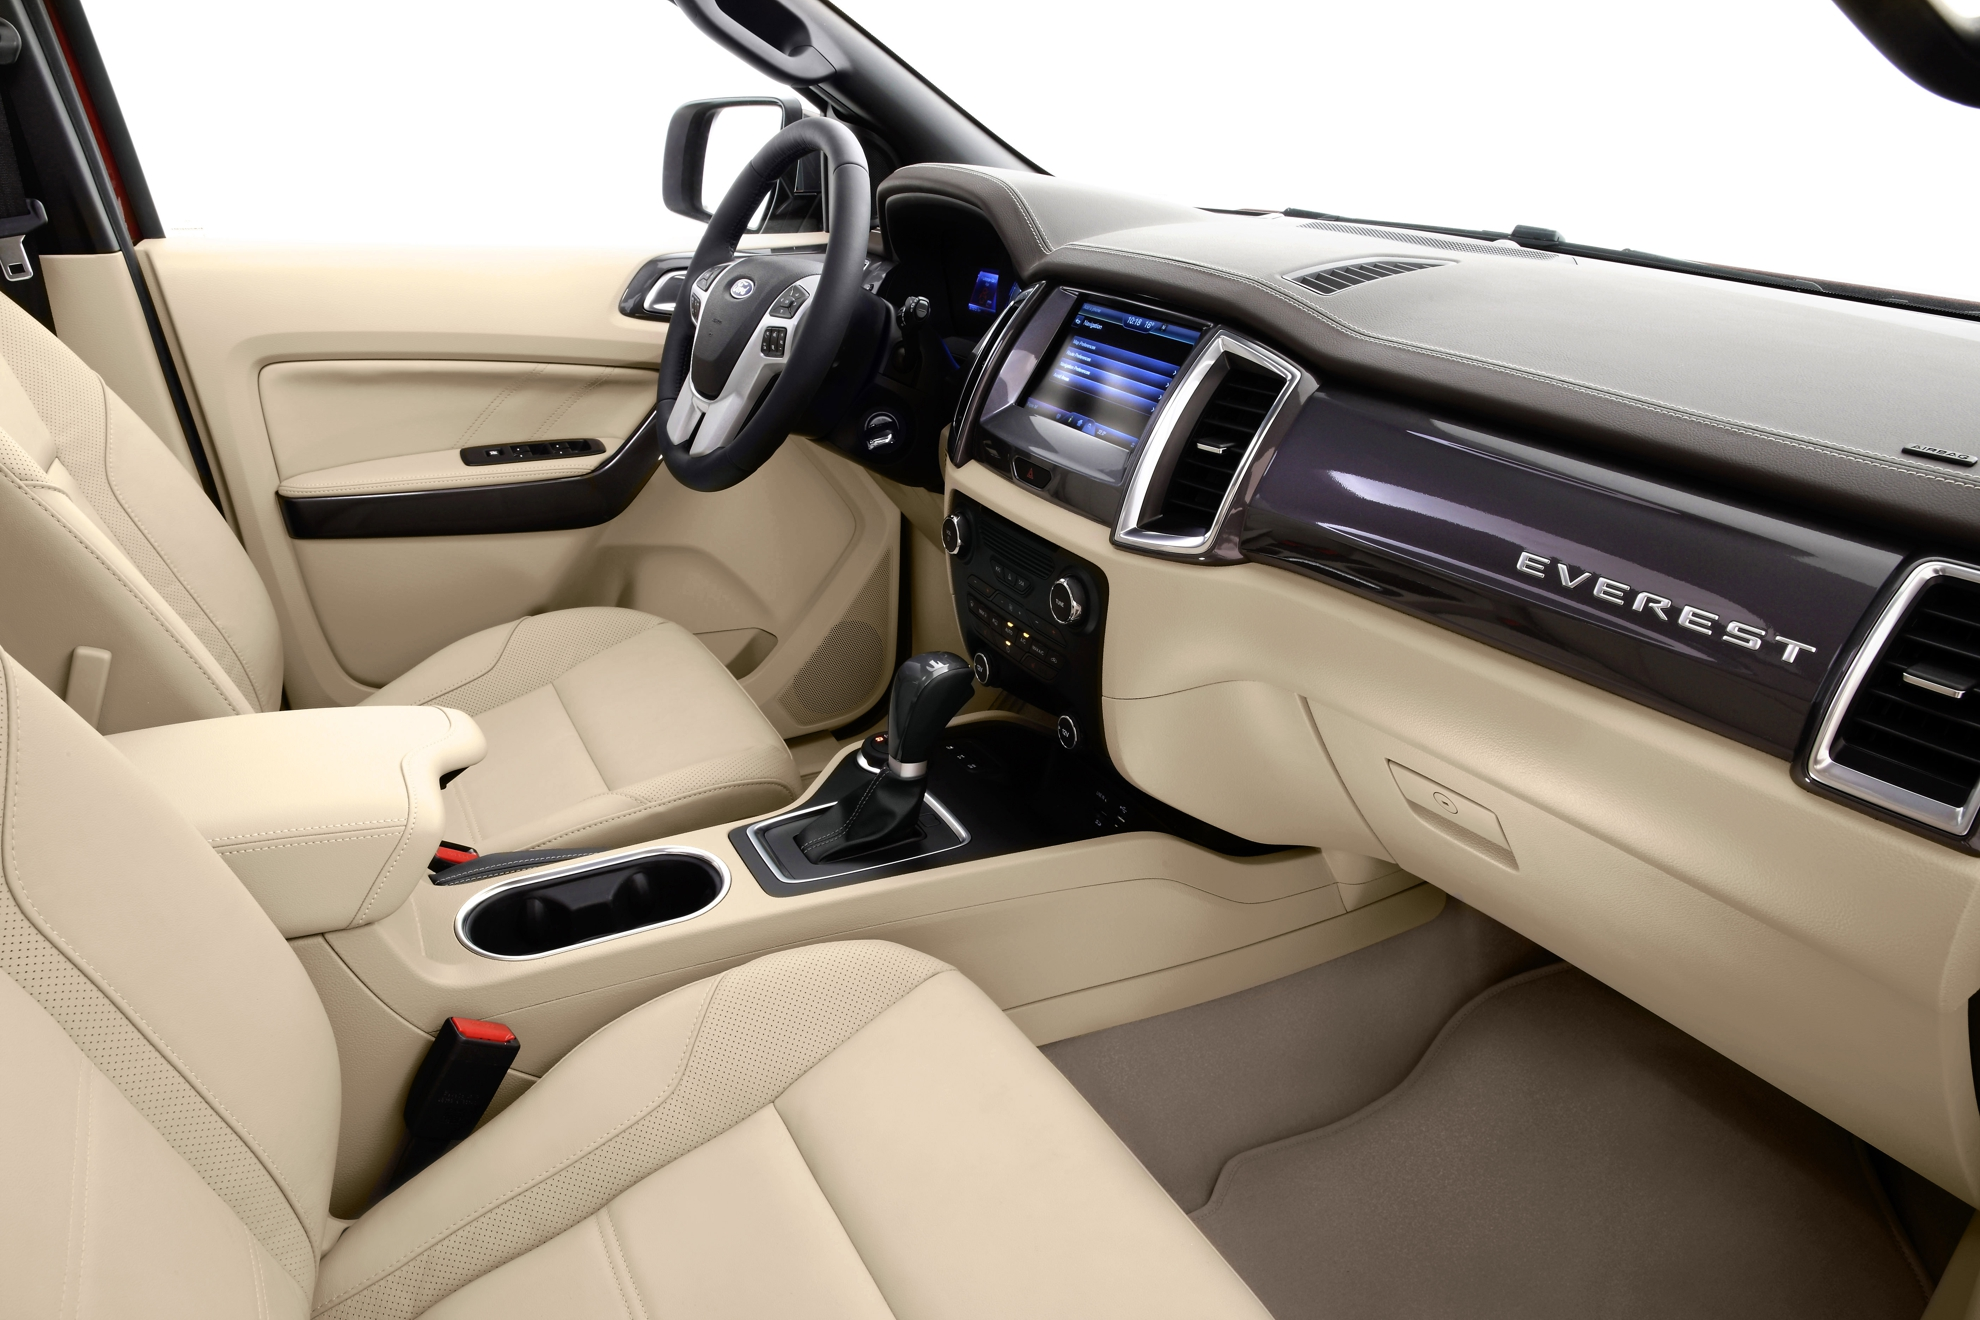 Ford-Everest-2015-Interior